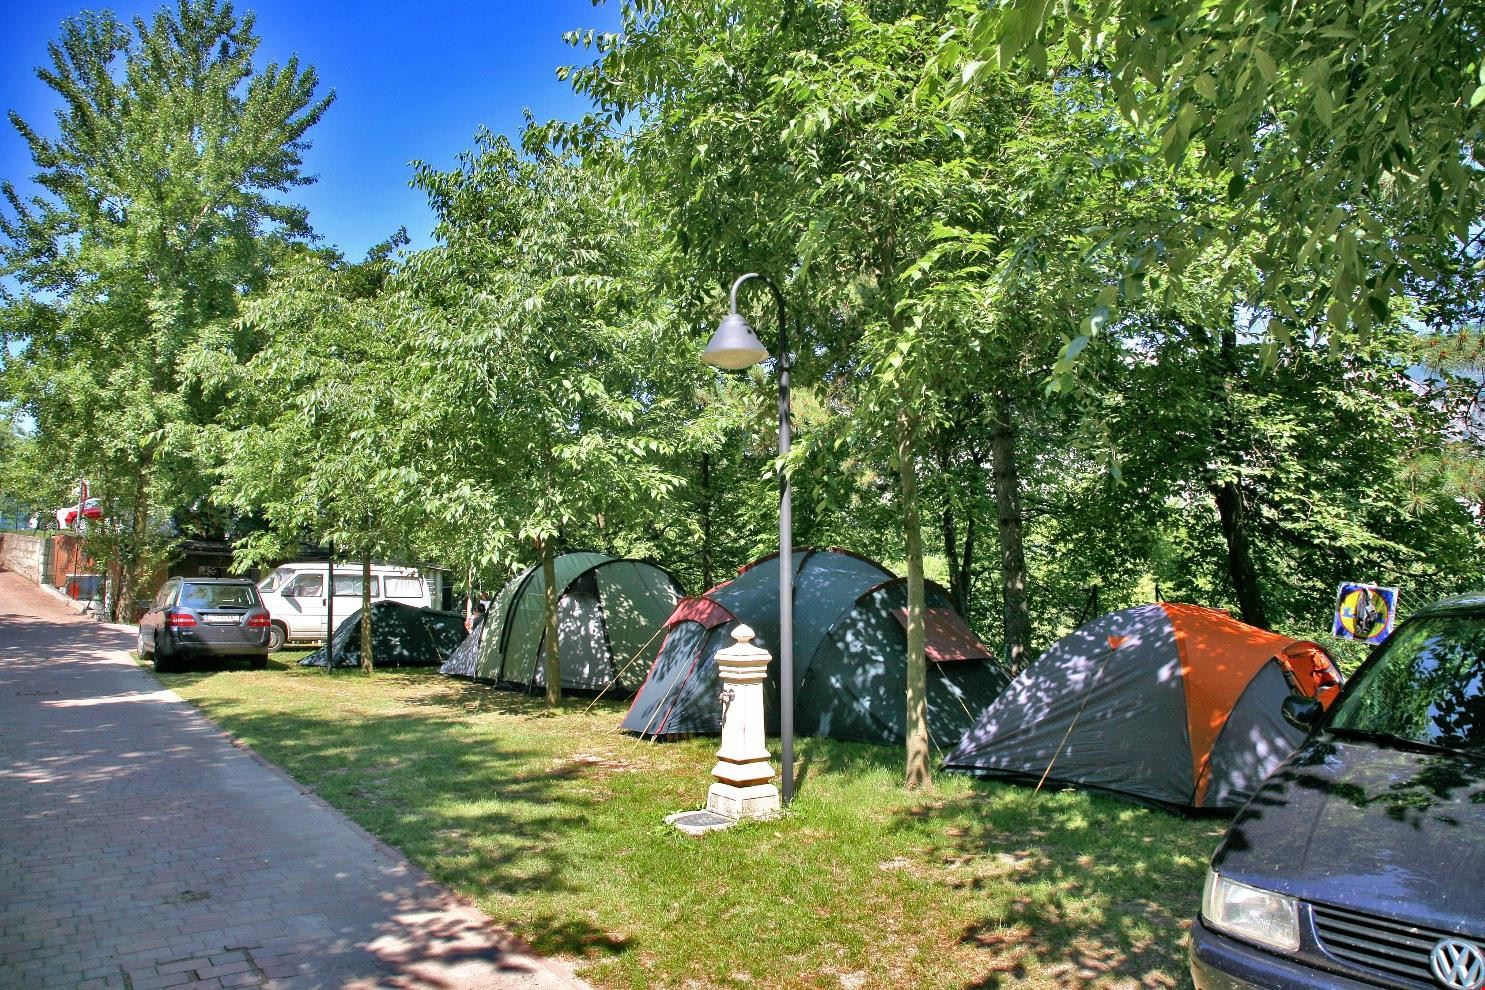 Camping a Malcesine